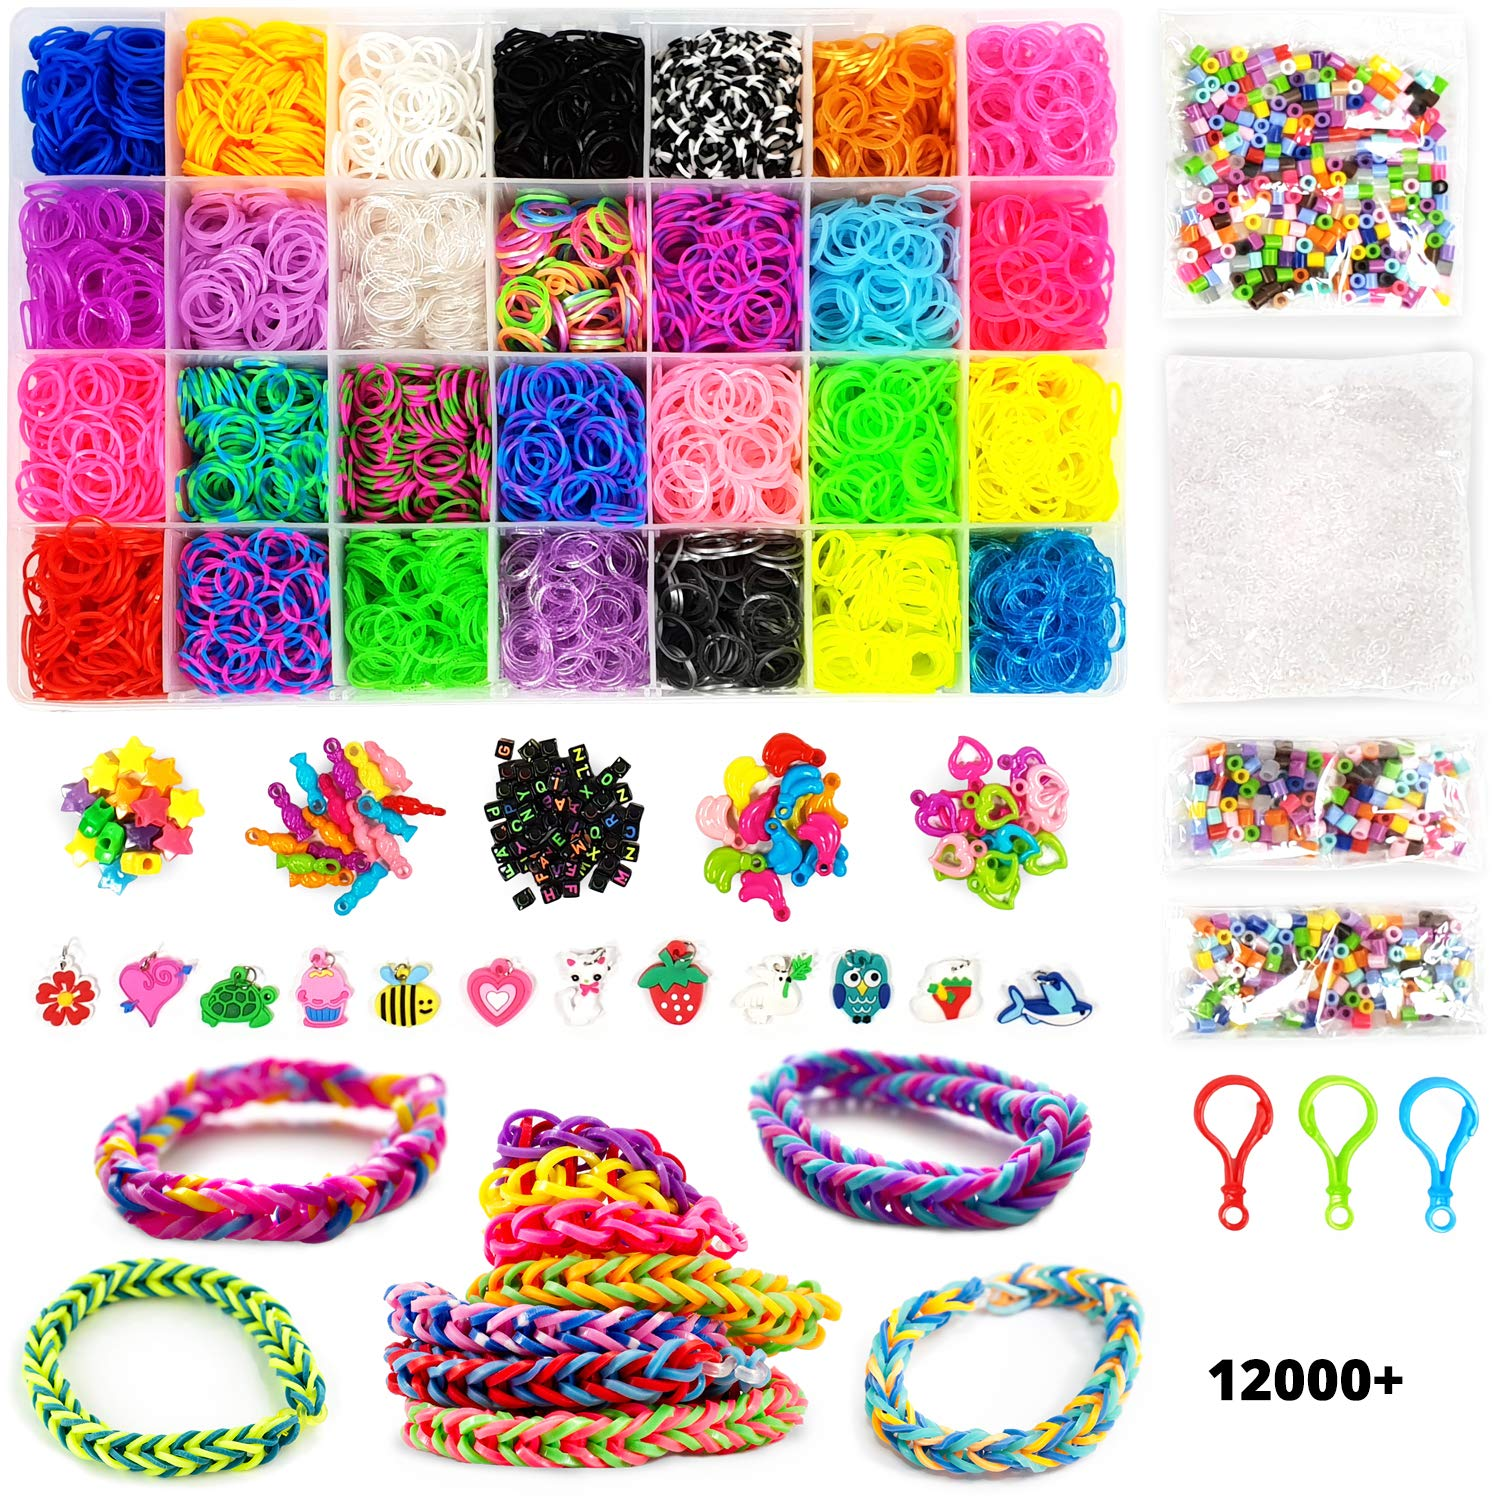 12000+ Rainbow Loom DIY Mega Loom Bands Refill Pack – Rubber Loom Bracelets Making Kit for Kids – Rubber Bands Jewelry Creator Refill Package – 42 Color Loom Bands Kit for Loom Bracelets Crafting Rainbow Tree Kids